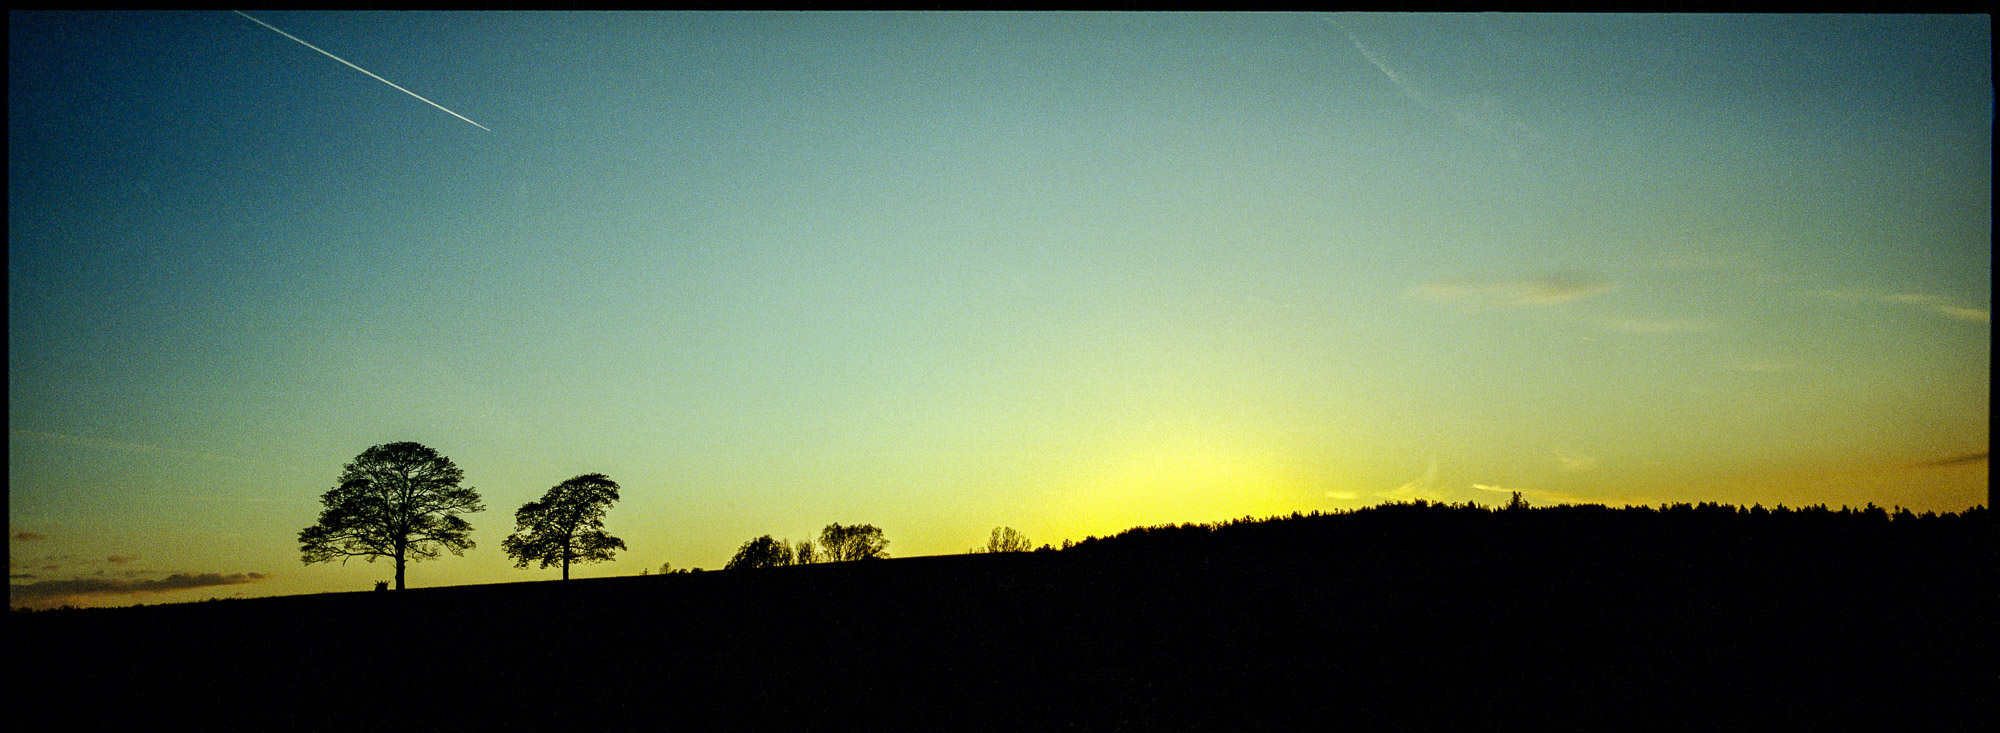 a sunset panaorama of shipley park using a hasselblad xpan